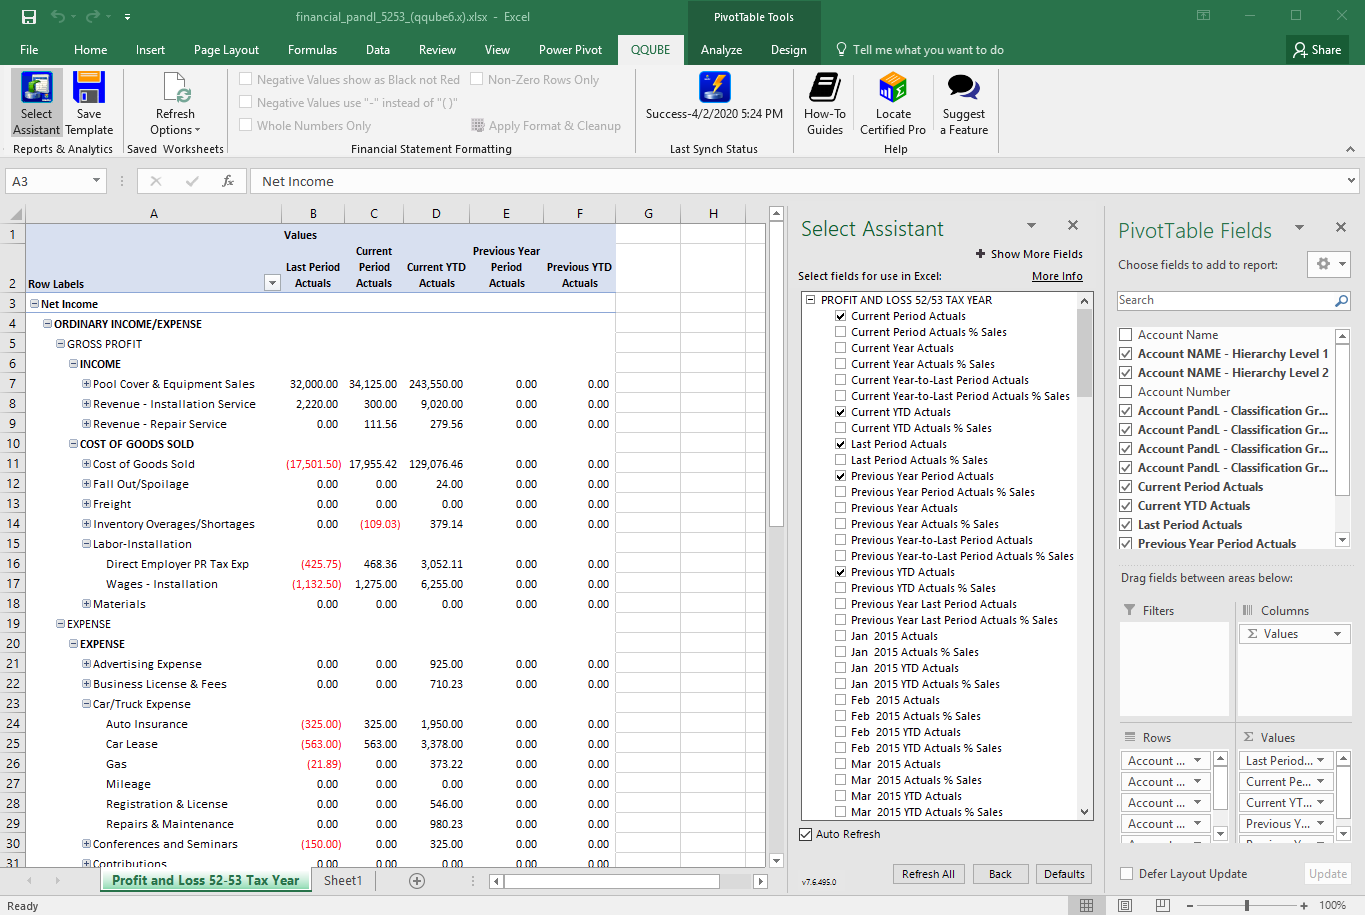 QuickBooks Profit and Loss by Class for 52/53 Tax Year using QQube with Excel